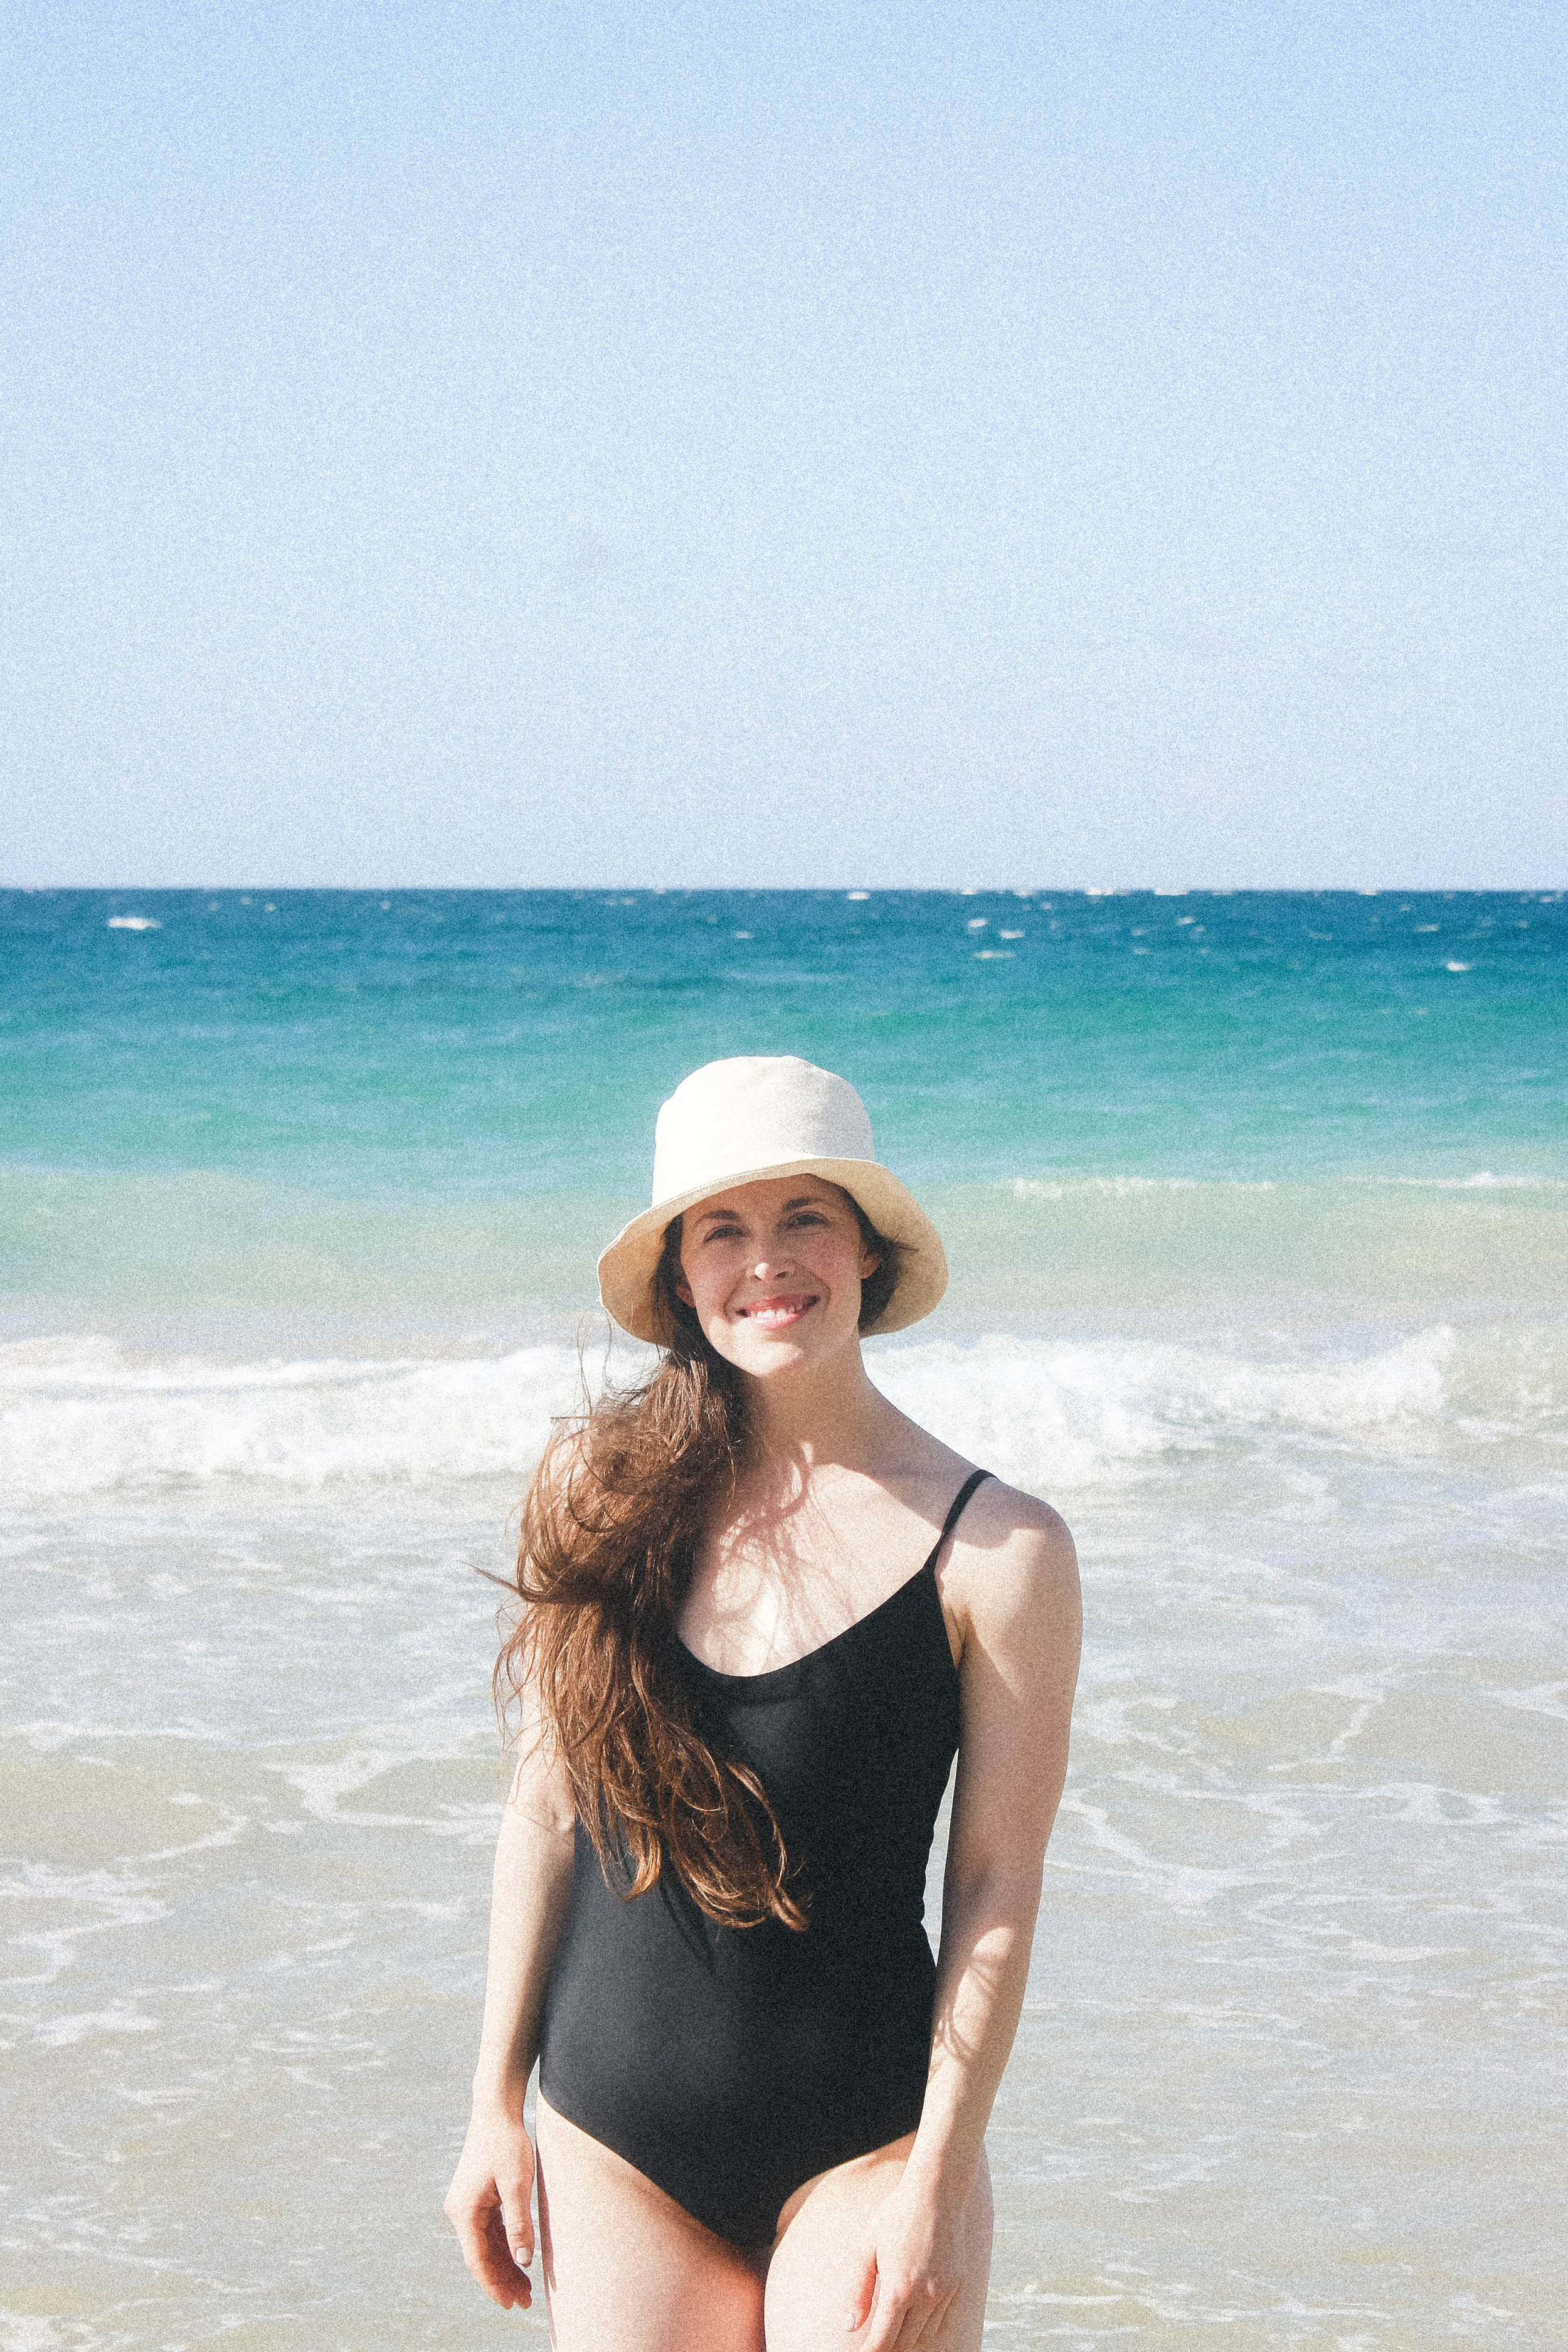 SAN JUAN, PUERTO RICO TRAVEL DIARY | TAYLORKRISTIINA.COM |   WEARING MATTEAU SCOOP MAILLOT AND JESSE KAMM FLY HAT